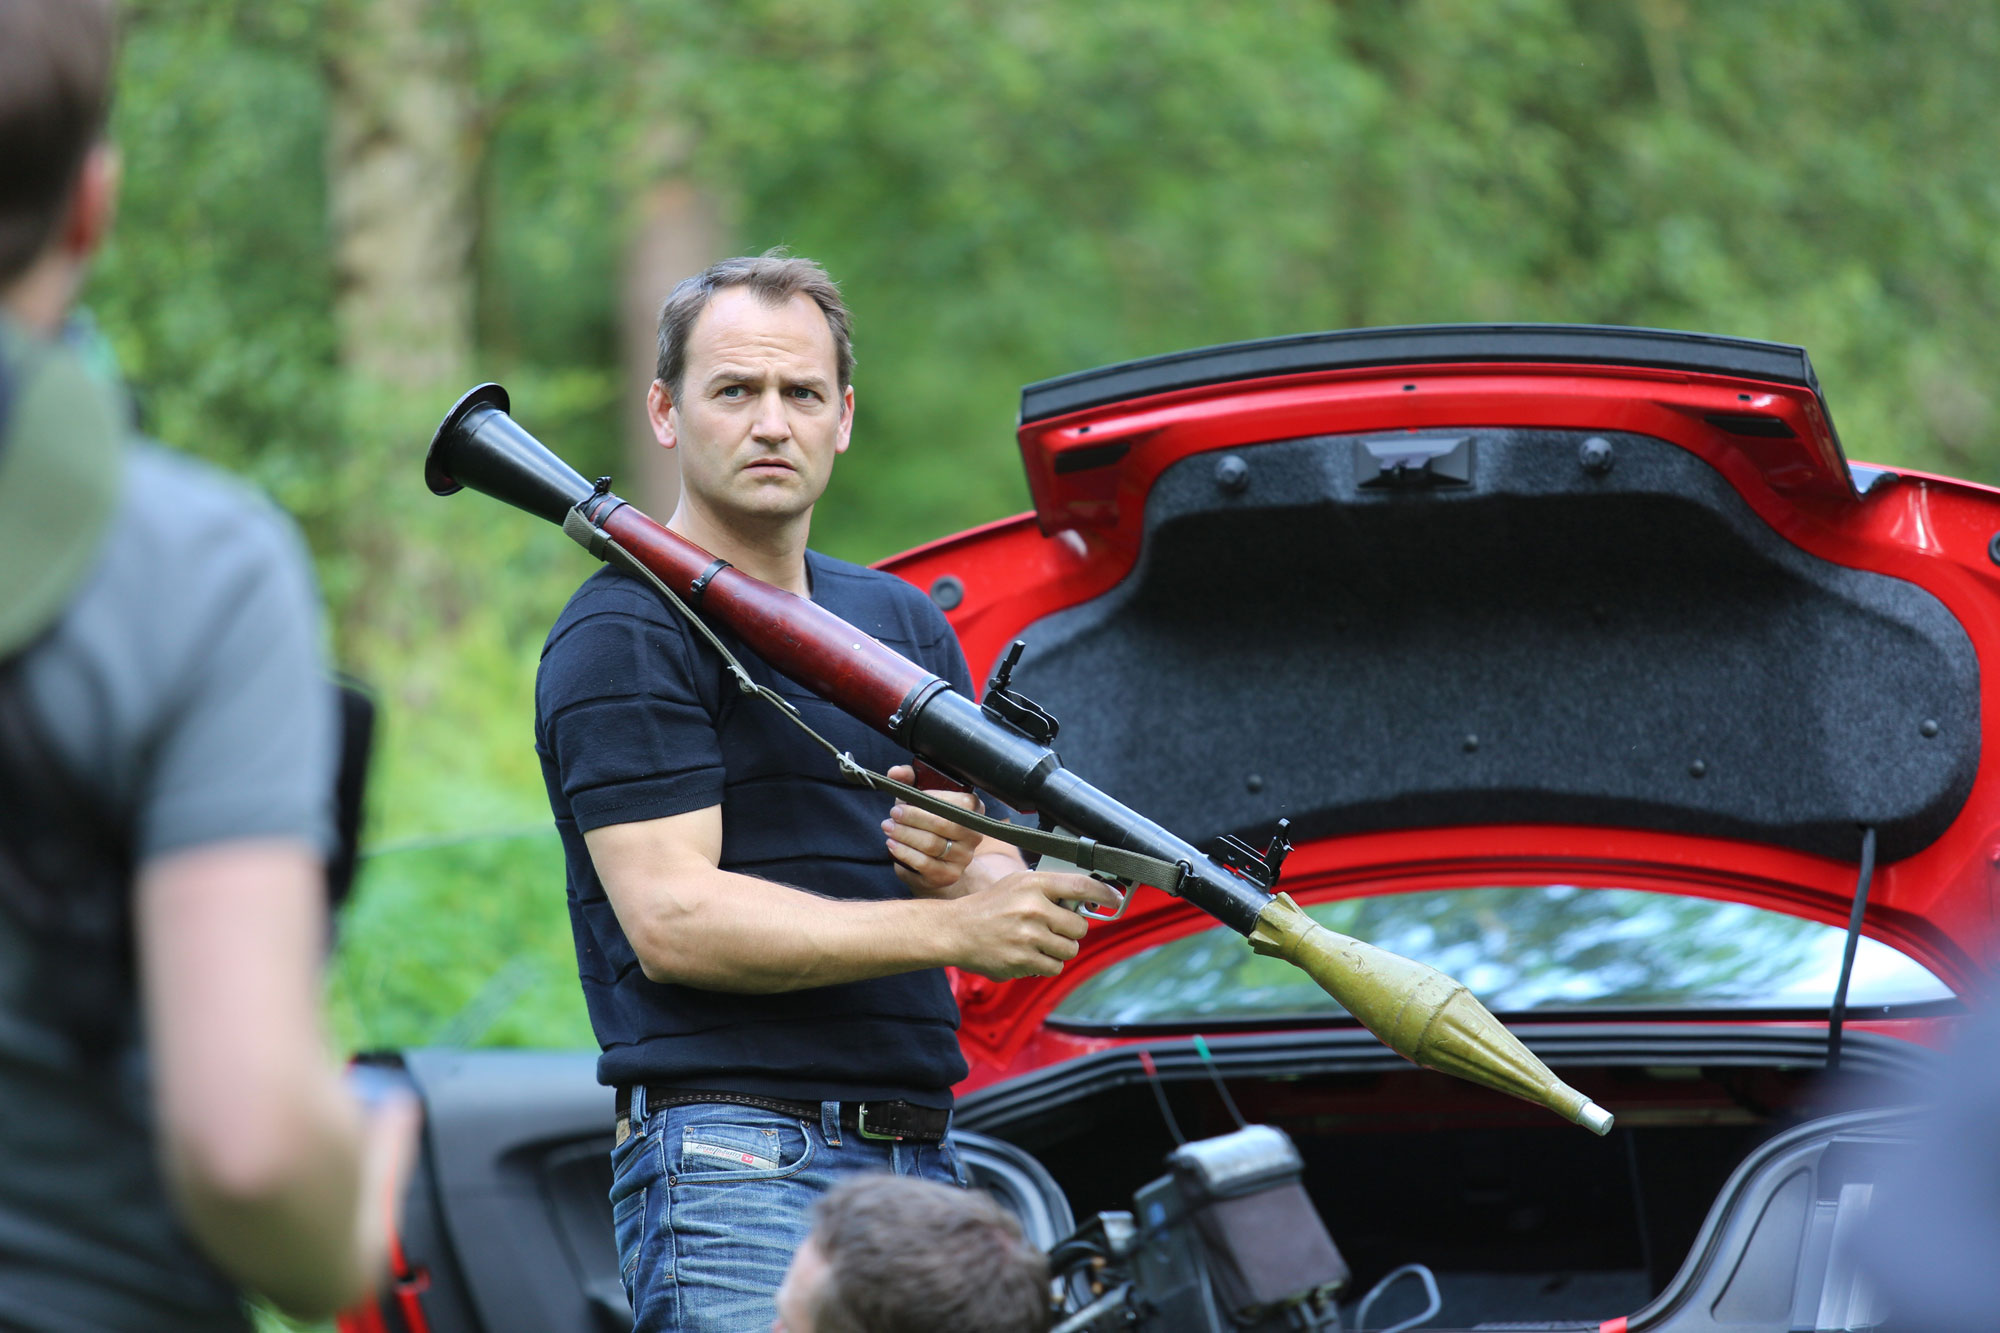 The Ben Collins The Grand Tour